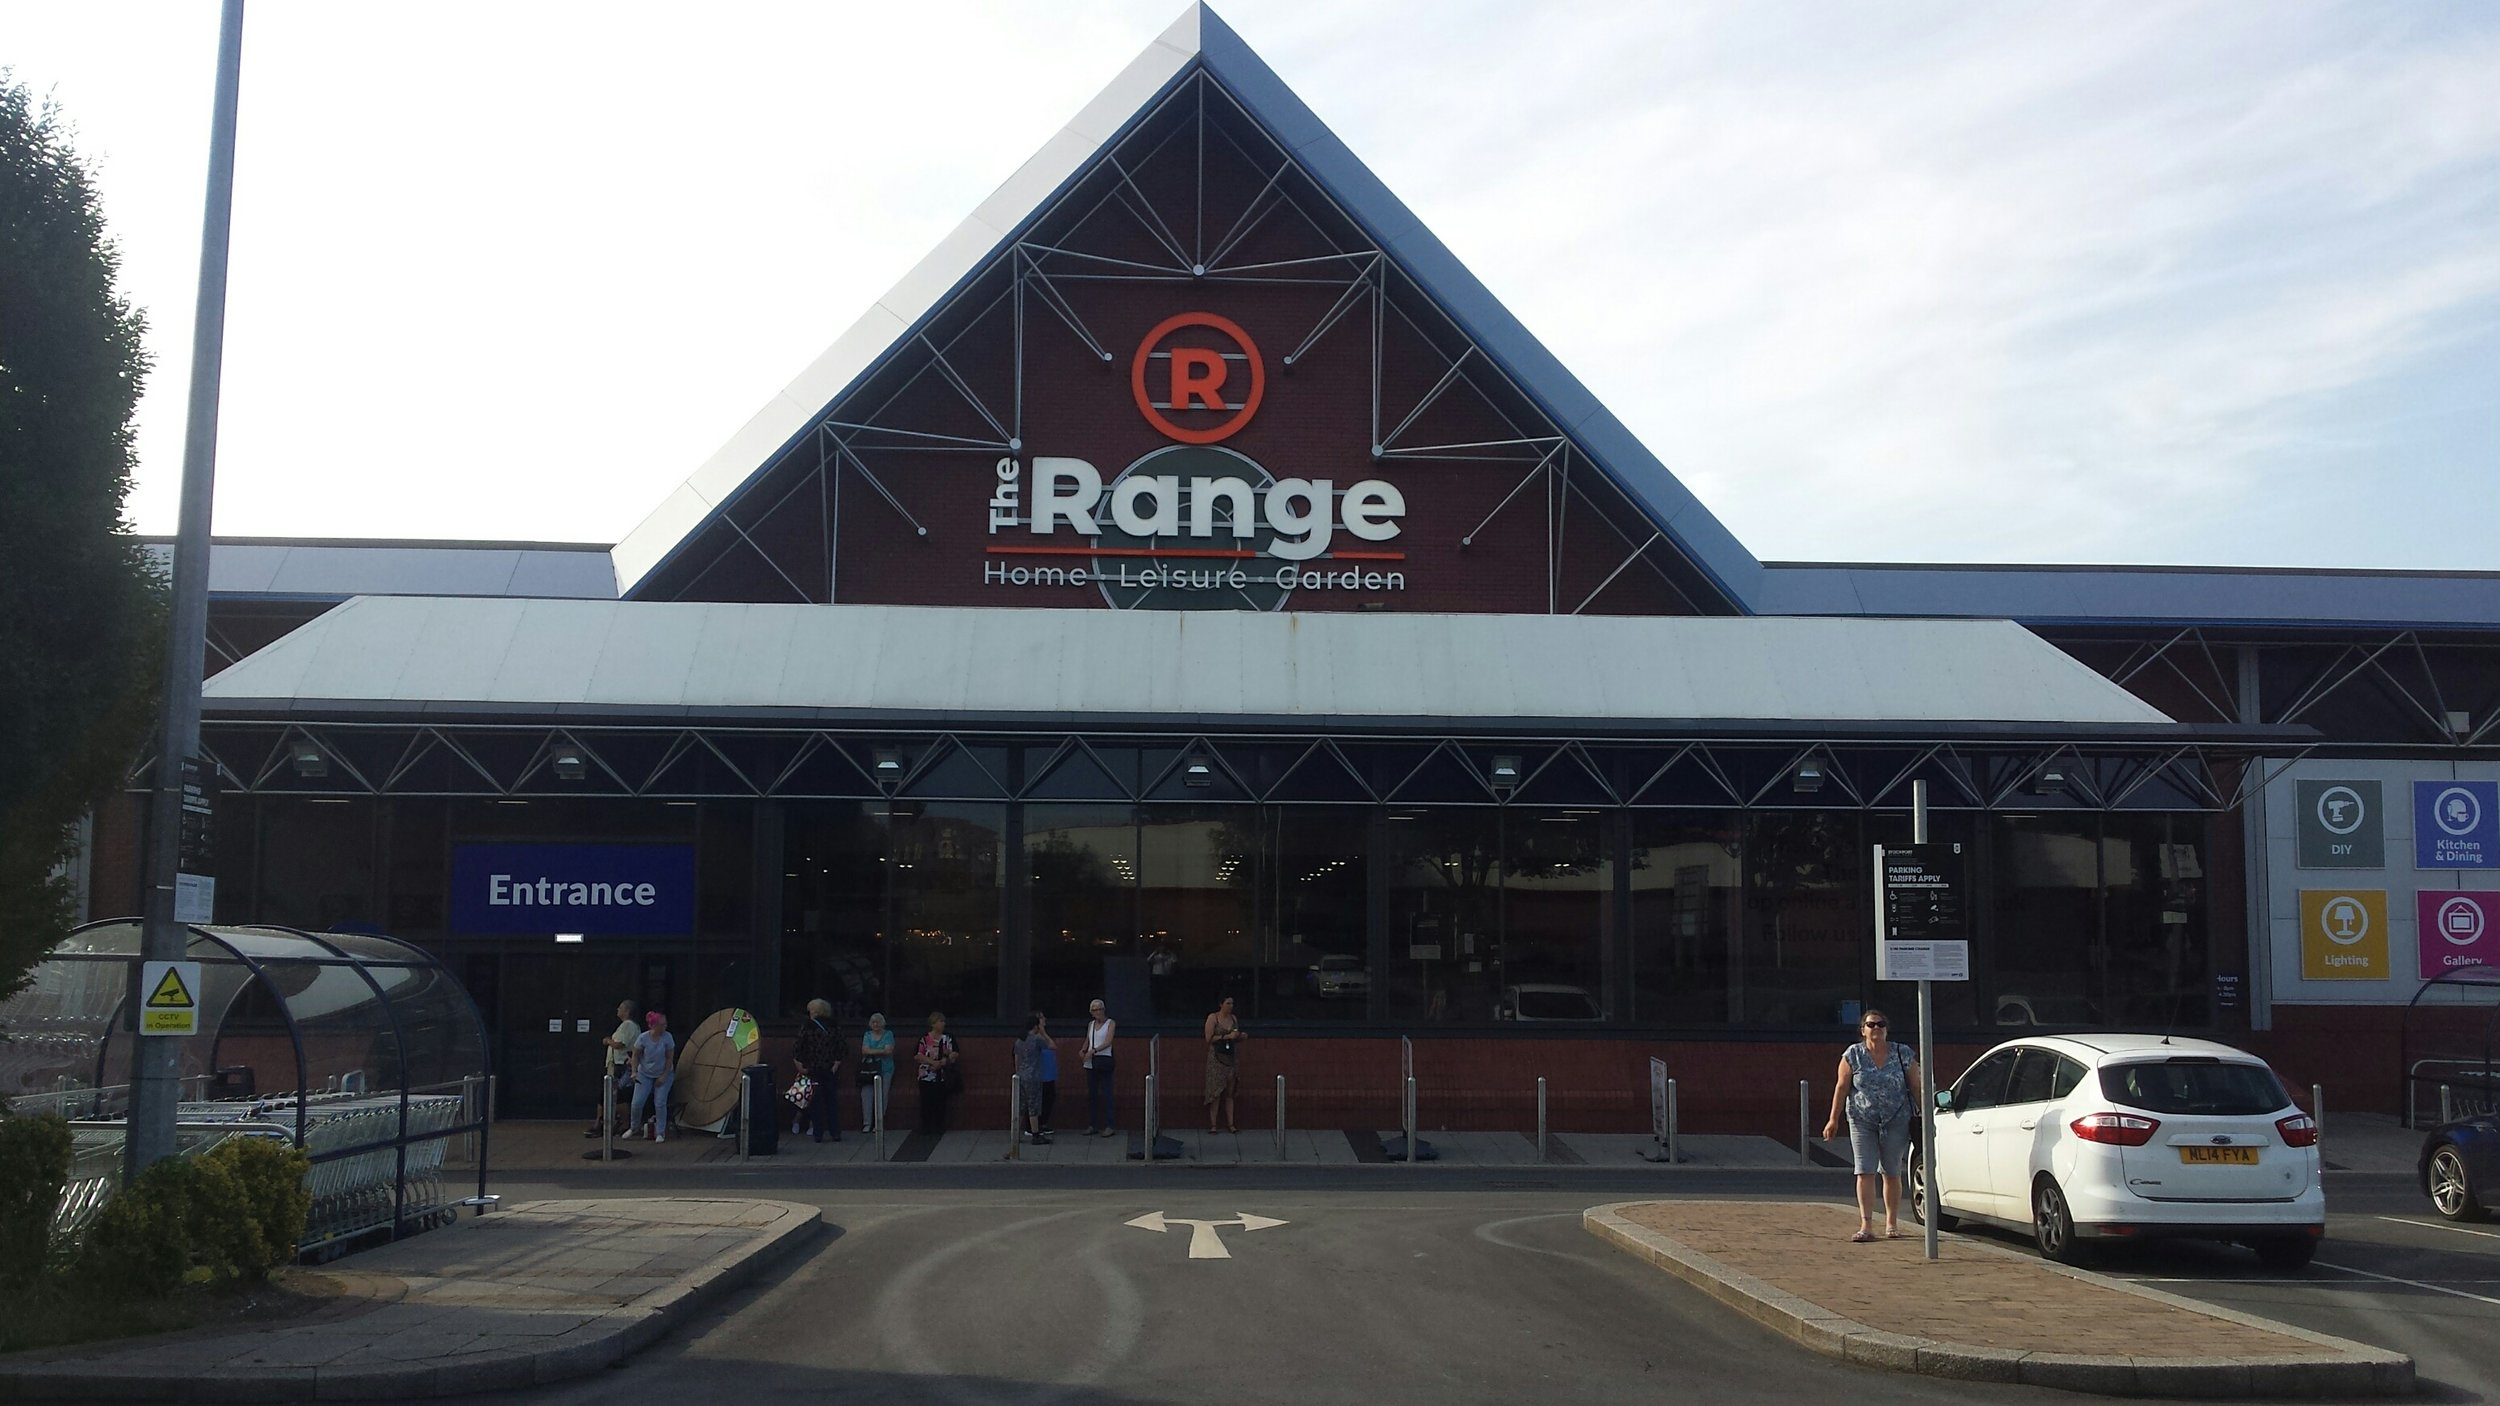 The Range at Stockport Retail Park opened this morning, Friday 26th July 2019